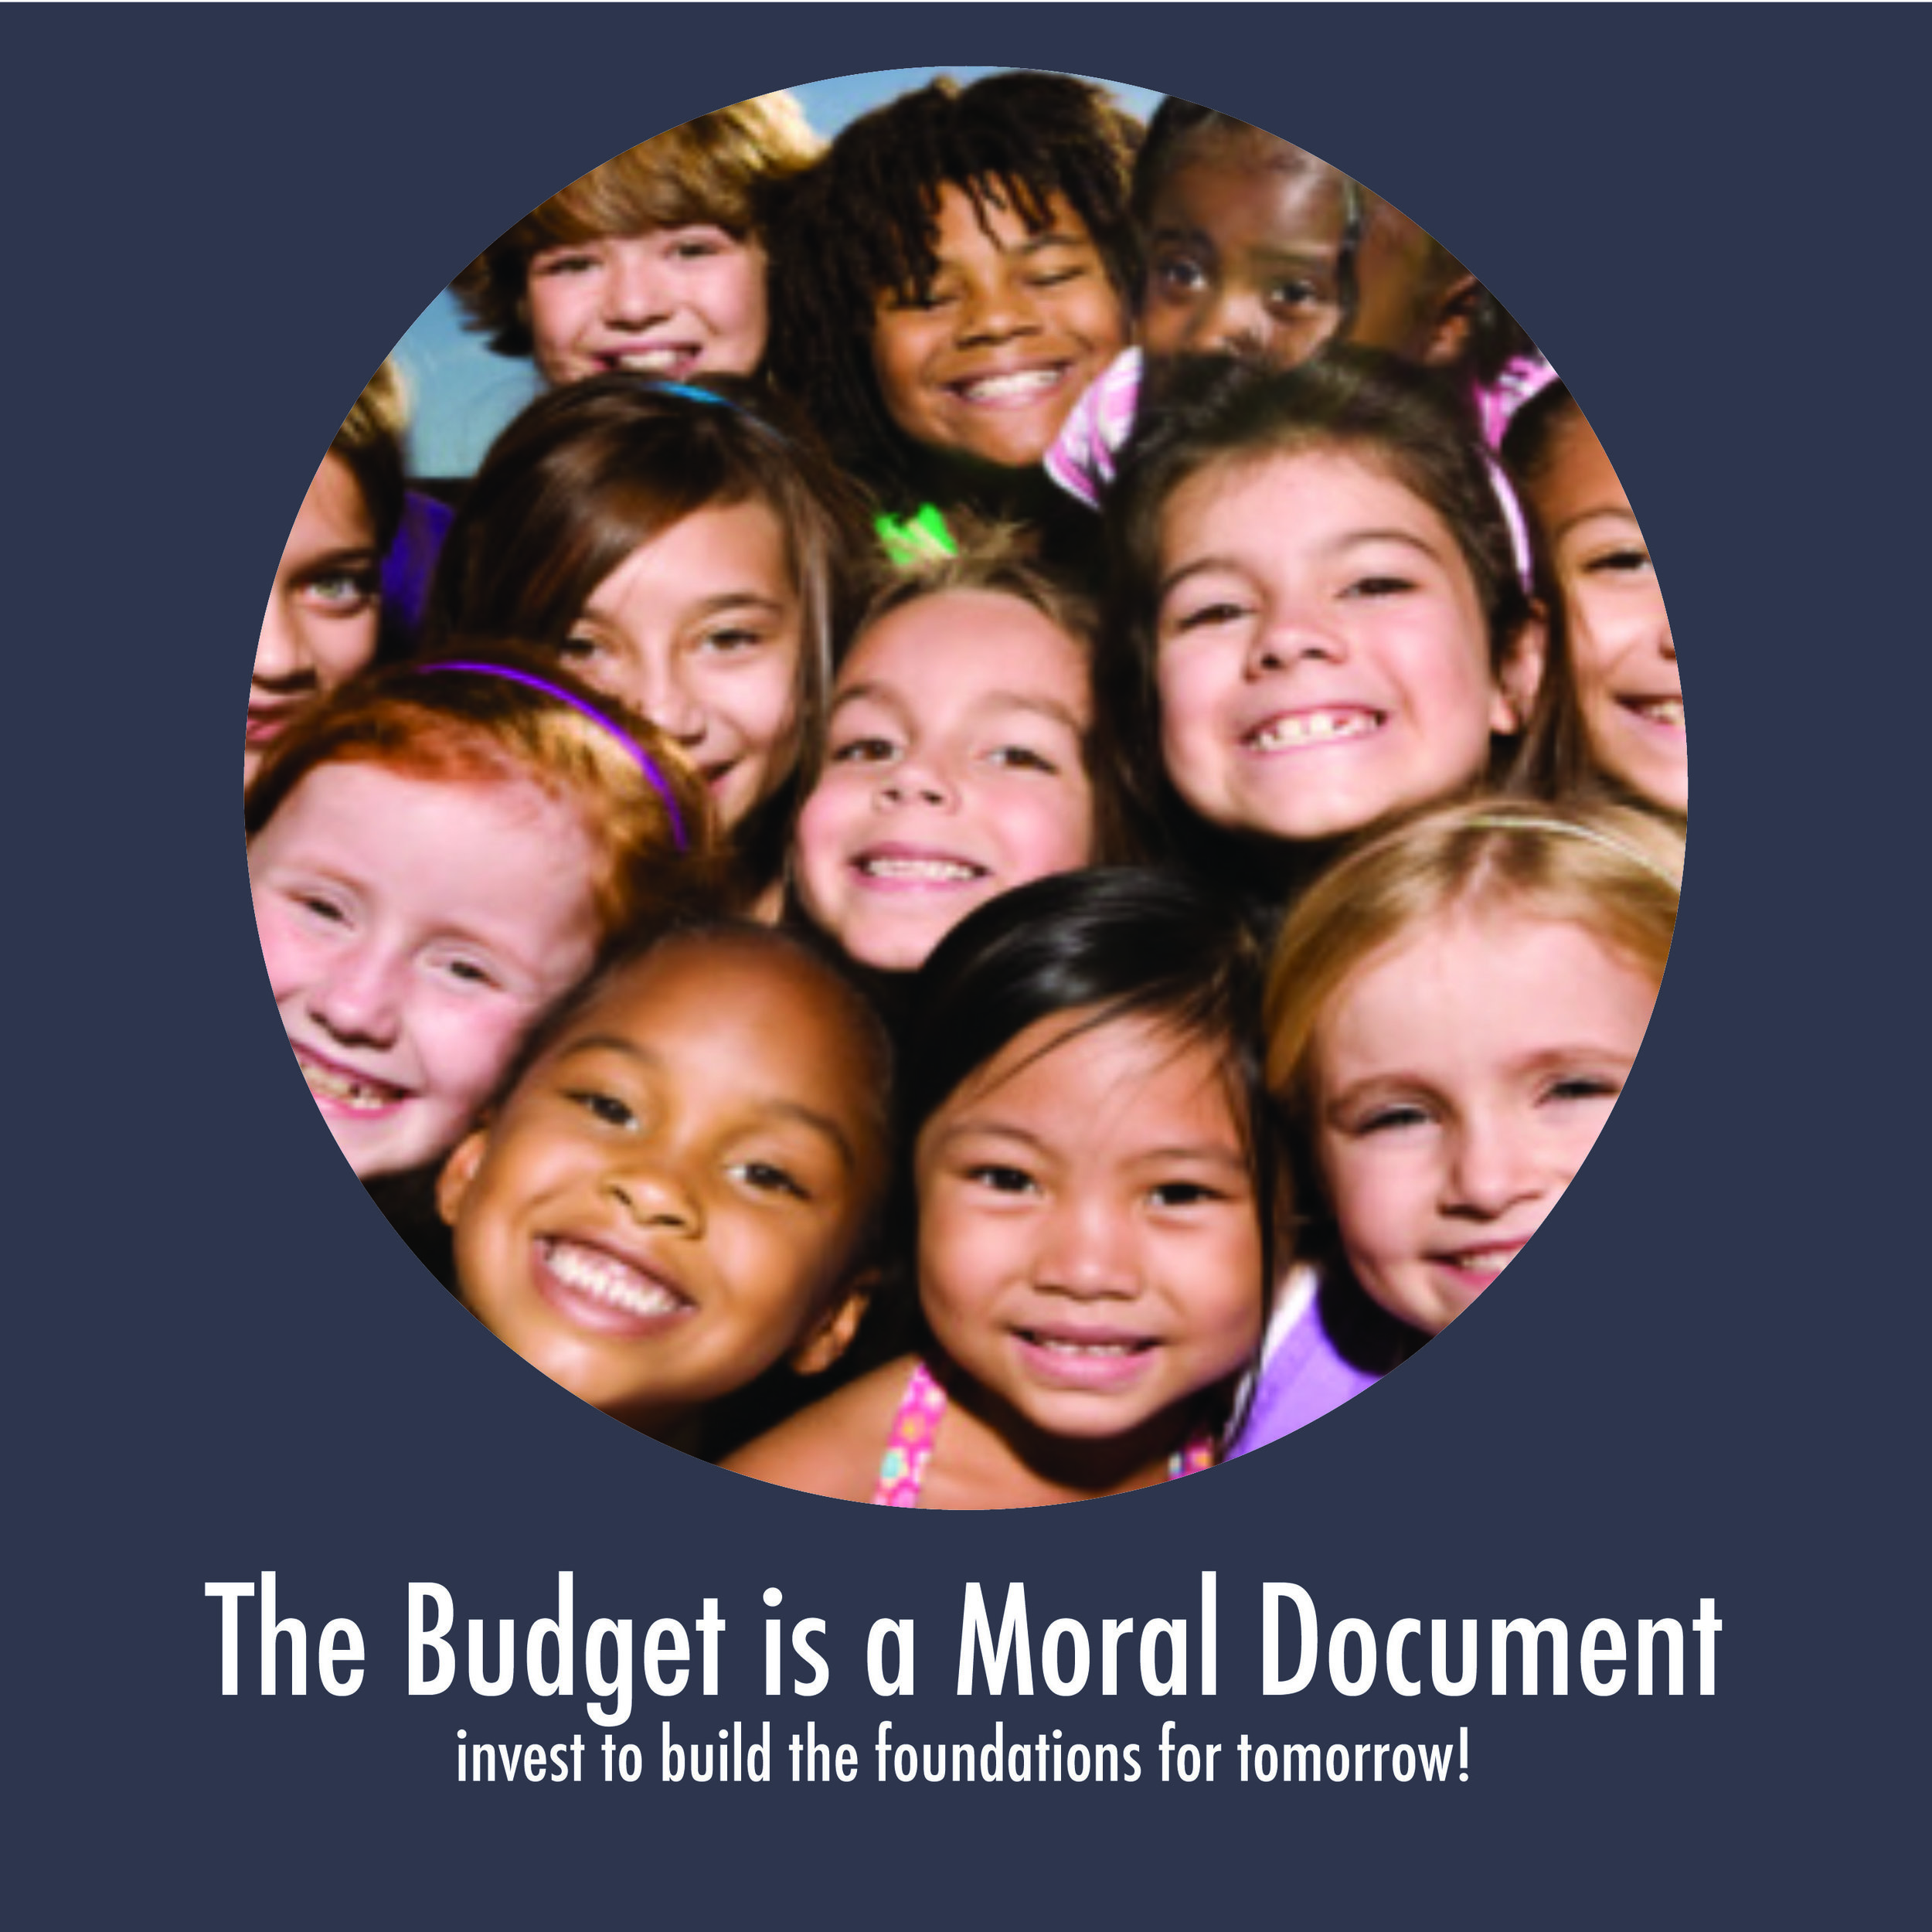 Join us for our BUDGET IS A MORAL DOCUMENT ADVOCACY DAY! - May 14, 20199:00am at the Ohio StatehouseGovernor Thomas Worthington Room